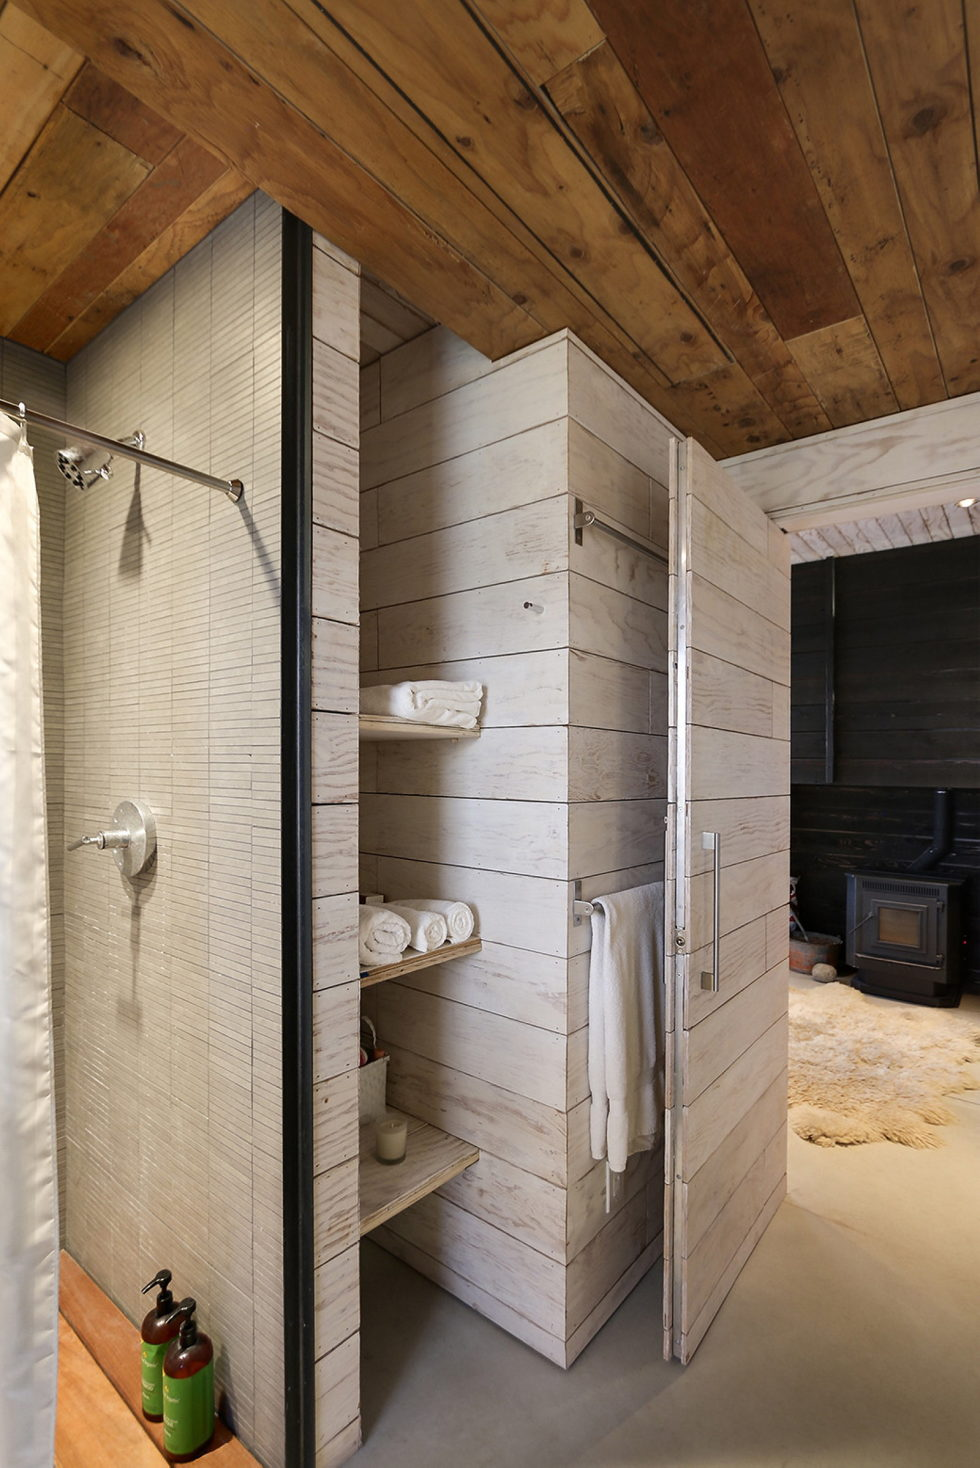 510 Cabin The Country House From Hunter Leggitt Studio In The USA 14